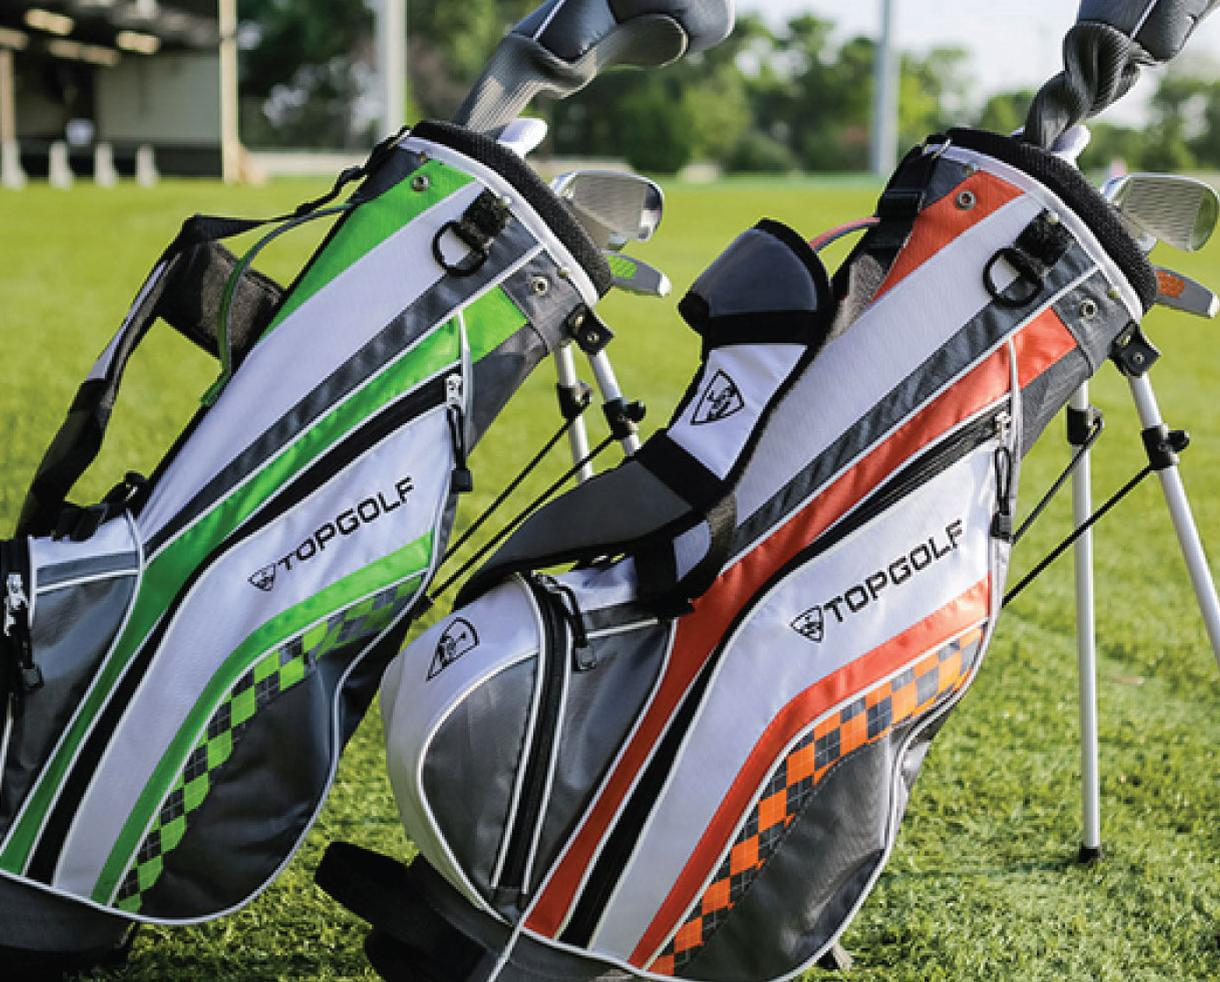 Enter to Win One Free Week of Topgolf Summer Academy + Free Set of Youth Golf Clubs